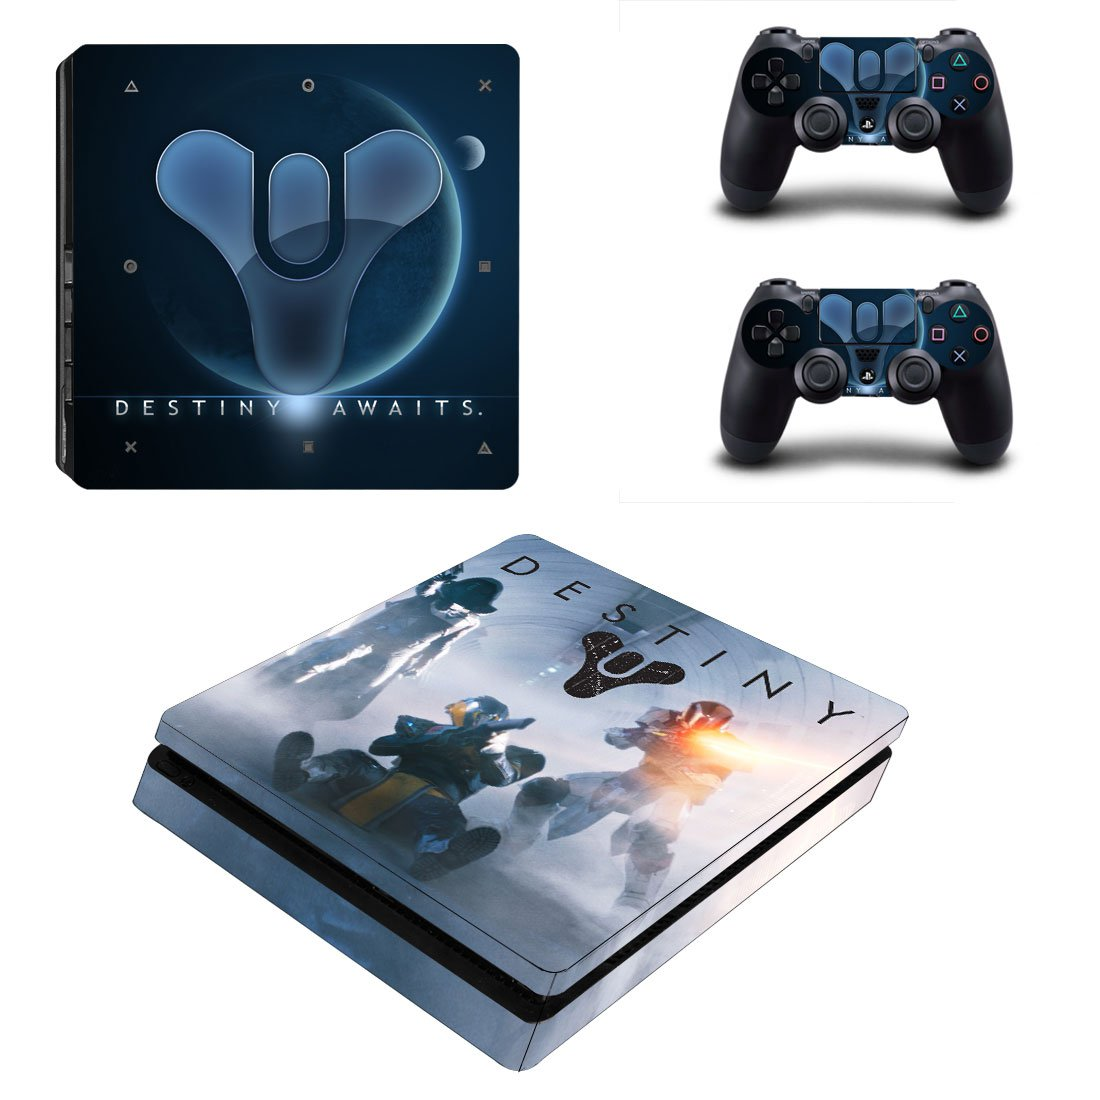 Destiny PS4 Slim Skin Sticker Decals PS4 Console And Controllers Protect Your PS4